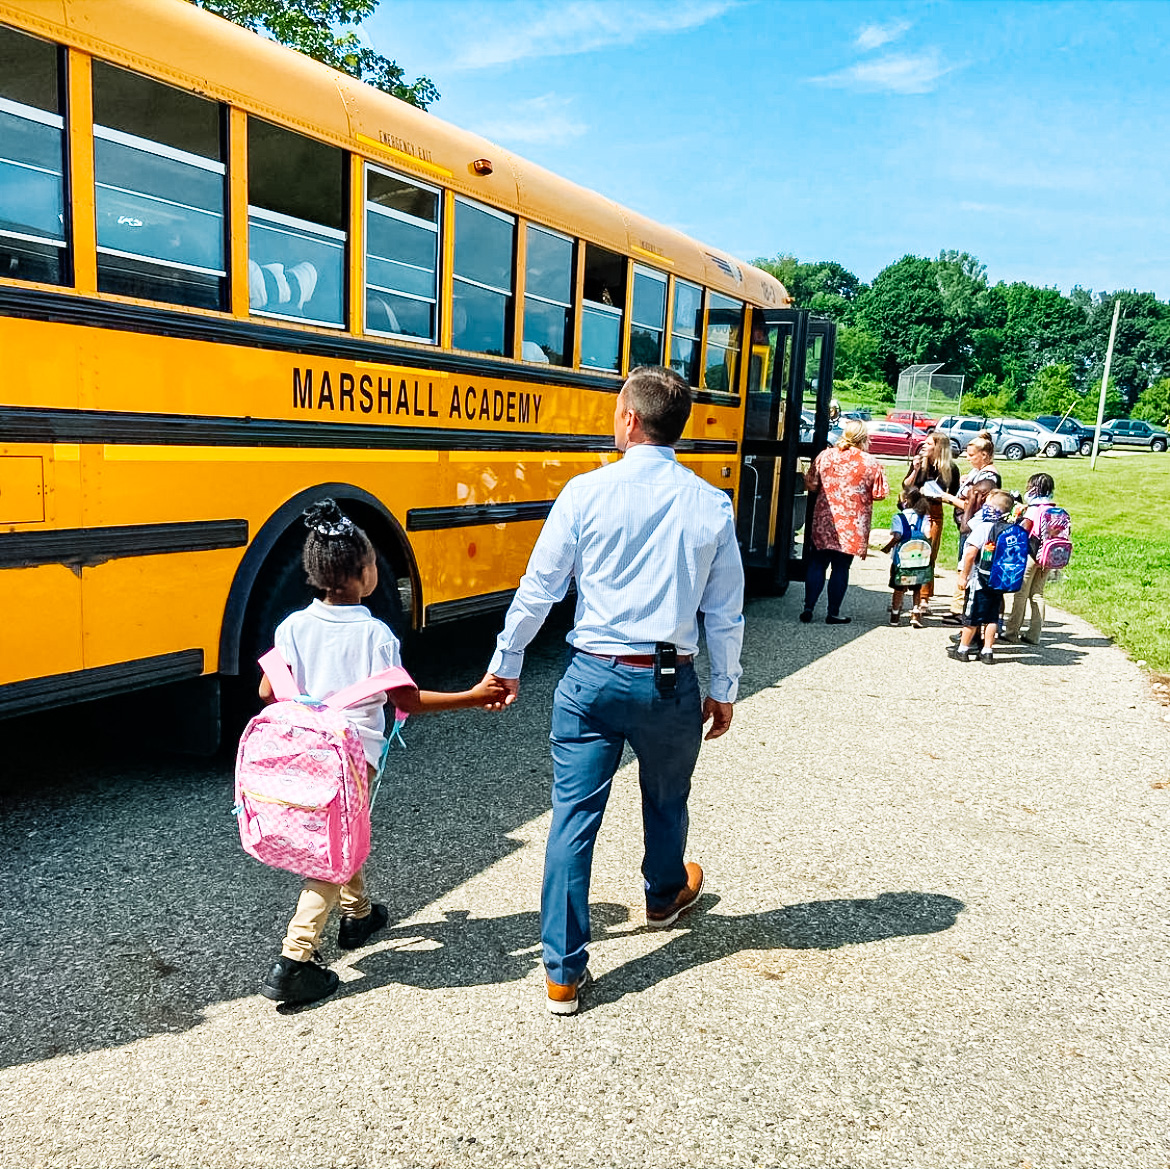 The principal from Marshall Academy walks a student to the bus